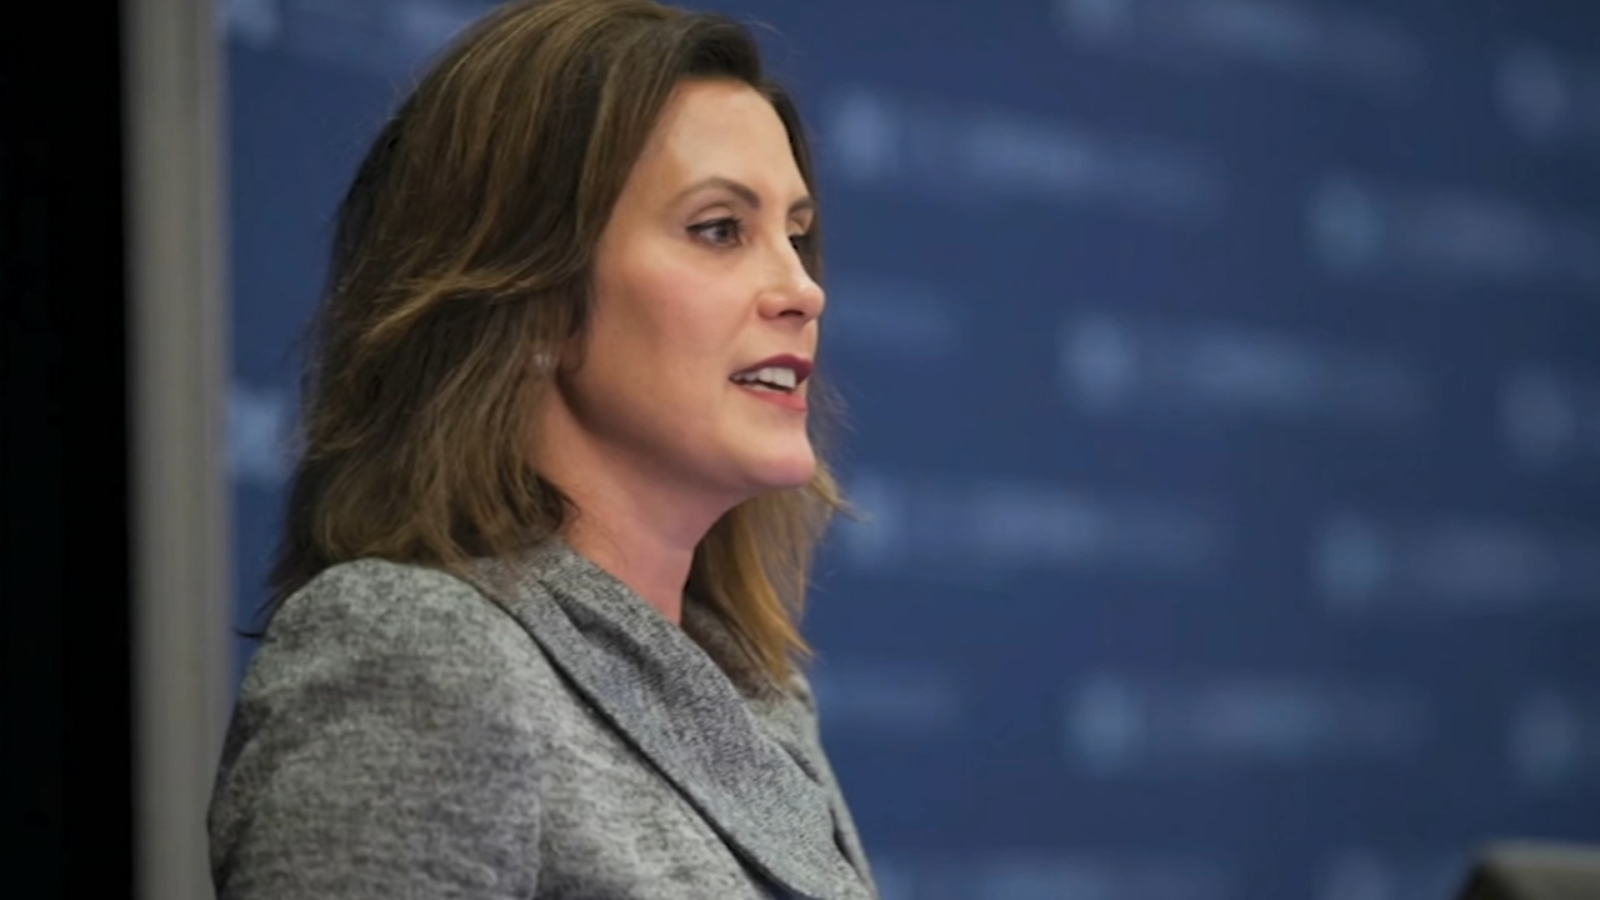 In wake of plot, Gov. Gretchen Whitmer not worried about